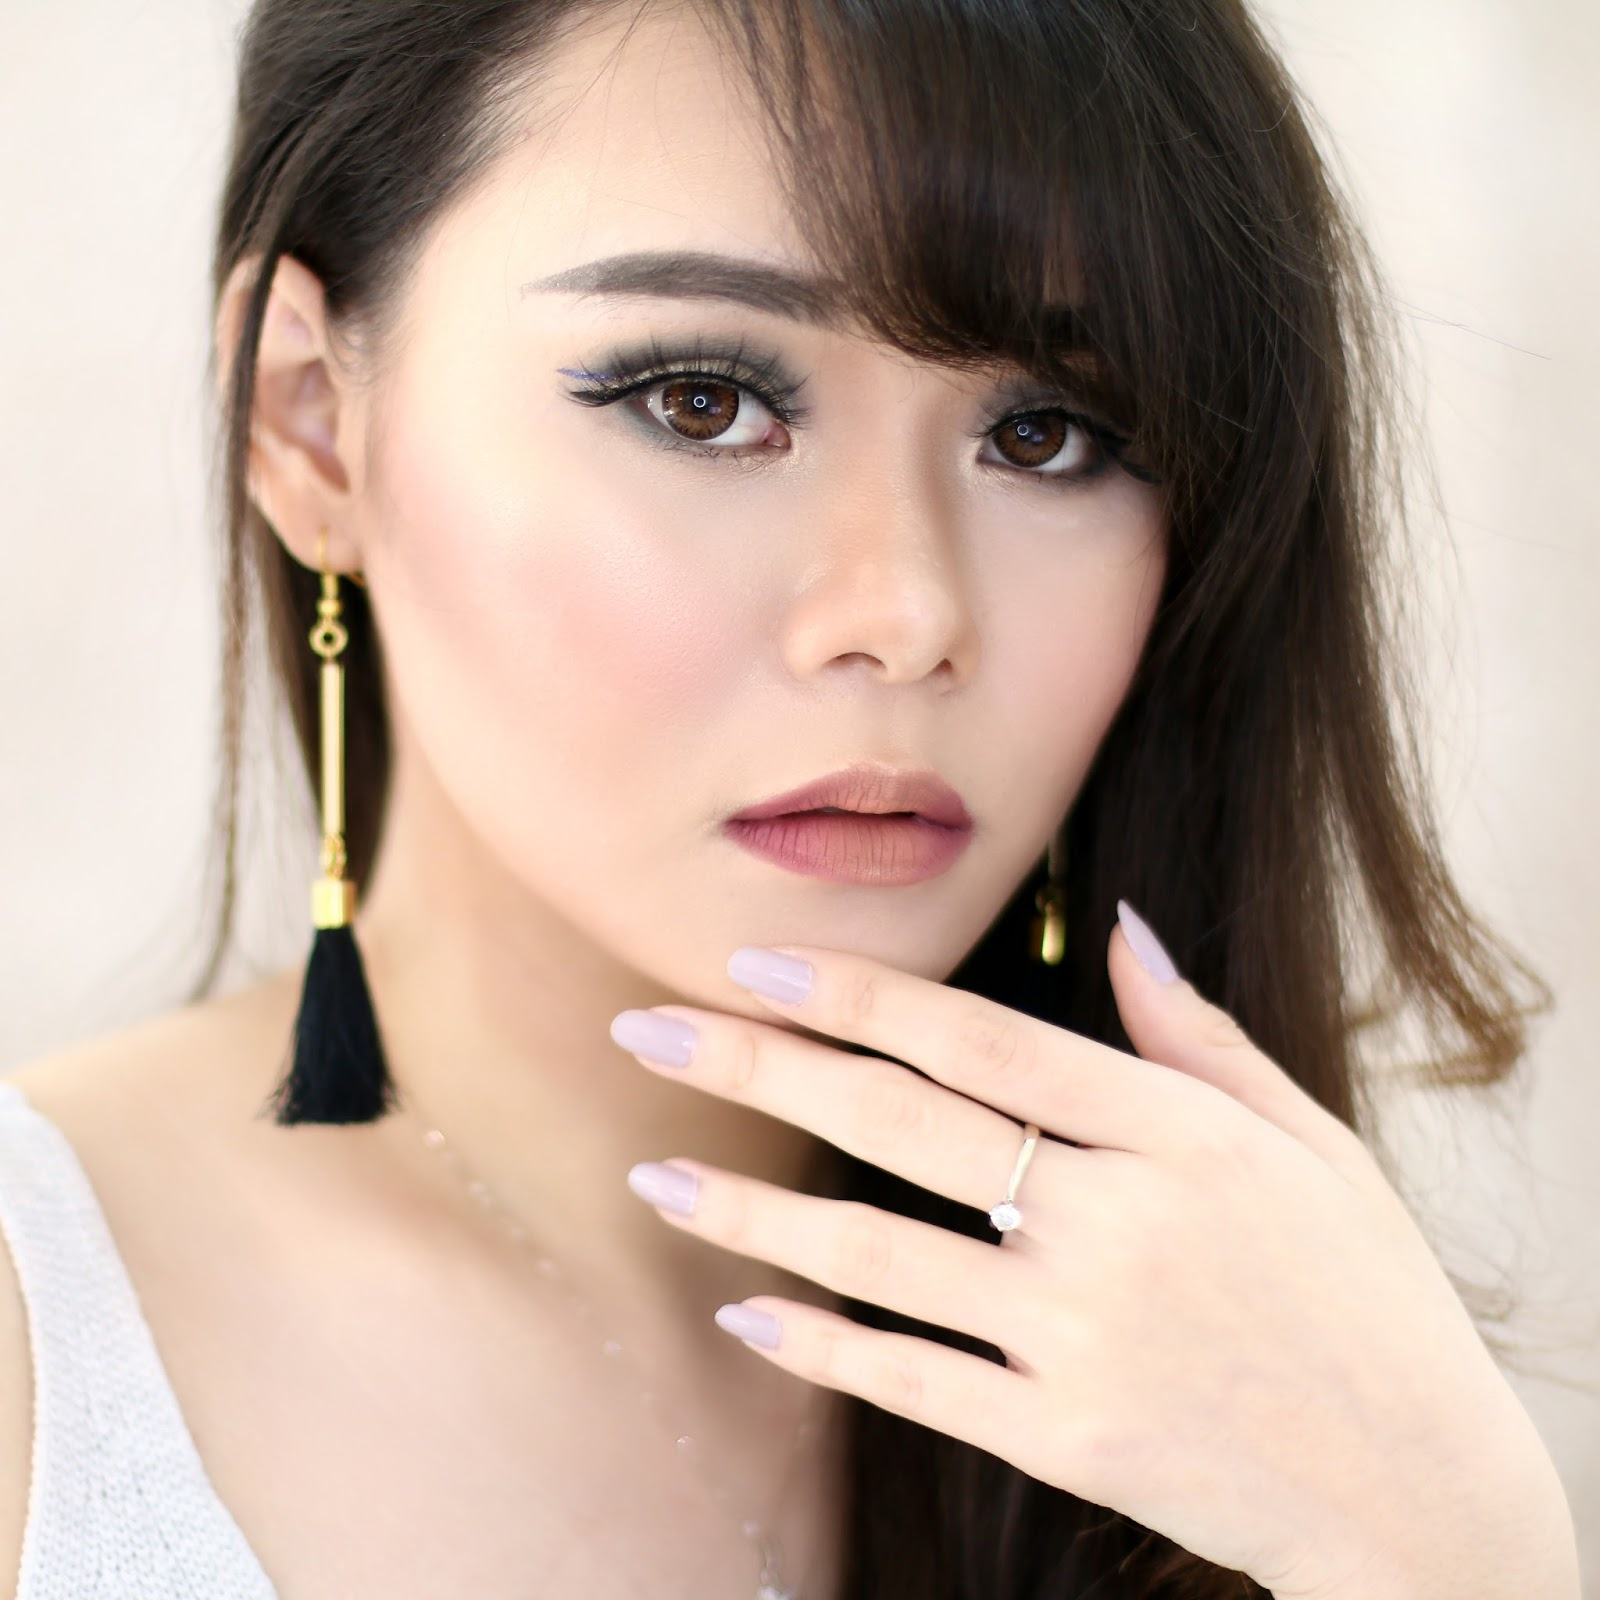 jean milka, makeup, makeup of the day, indonesian beauty blogger, beauty, beauty blogger, beauty blogger indonesia, beauty vlogger indonesia